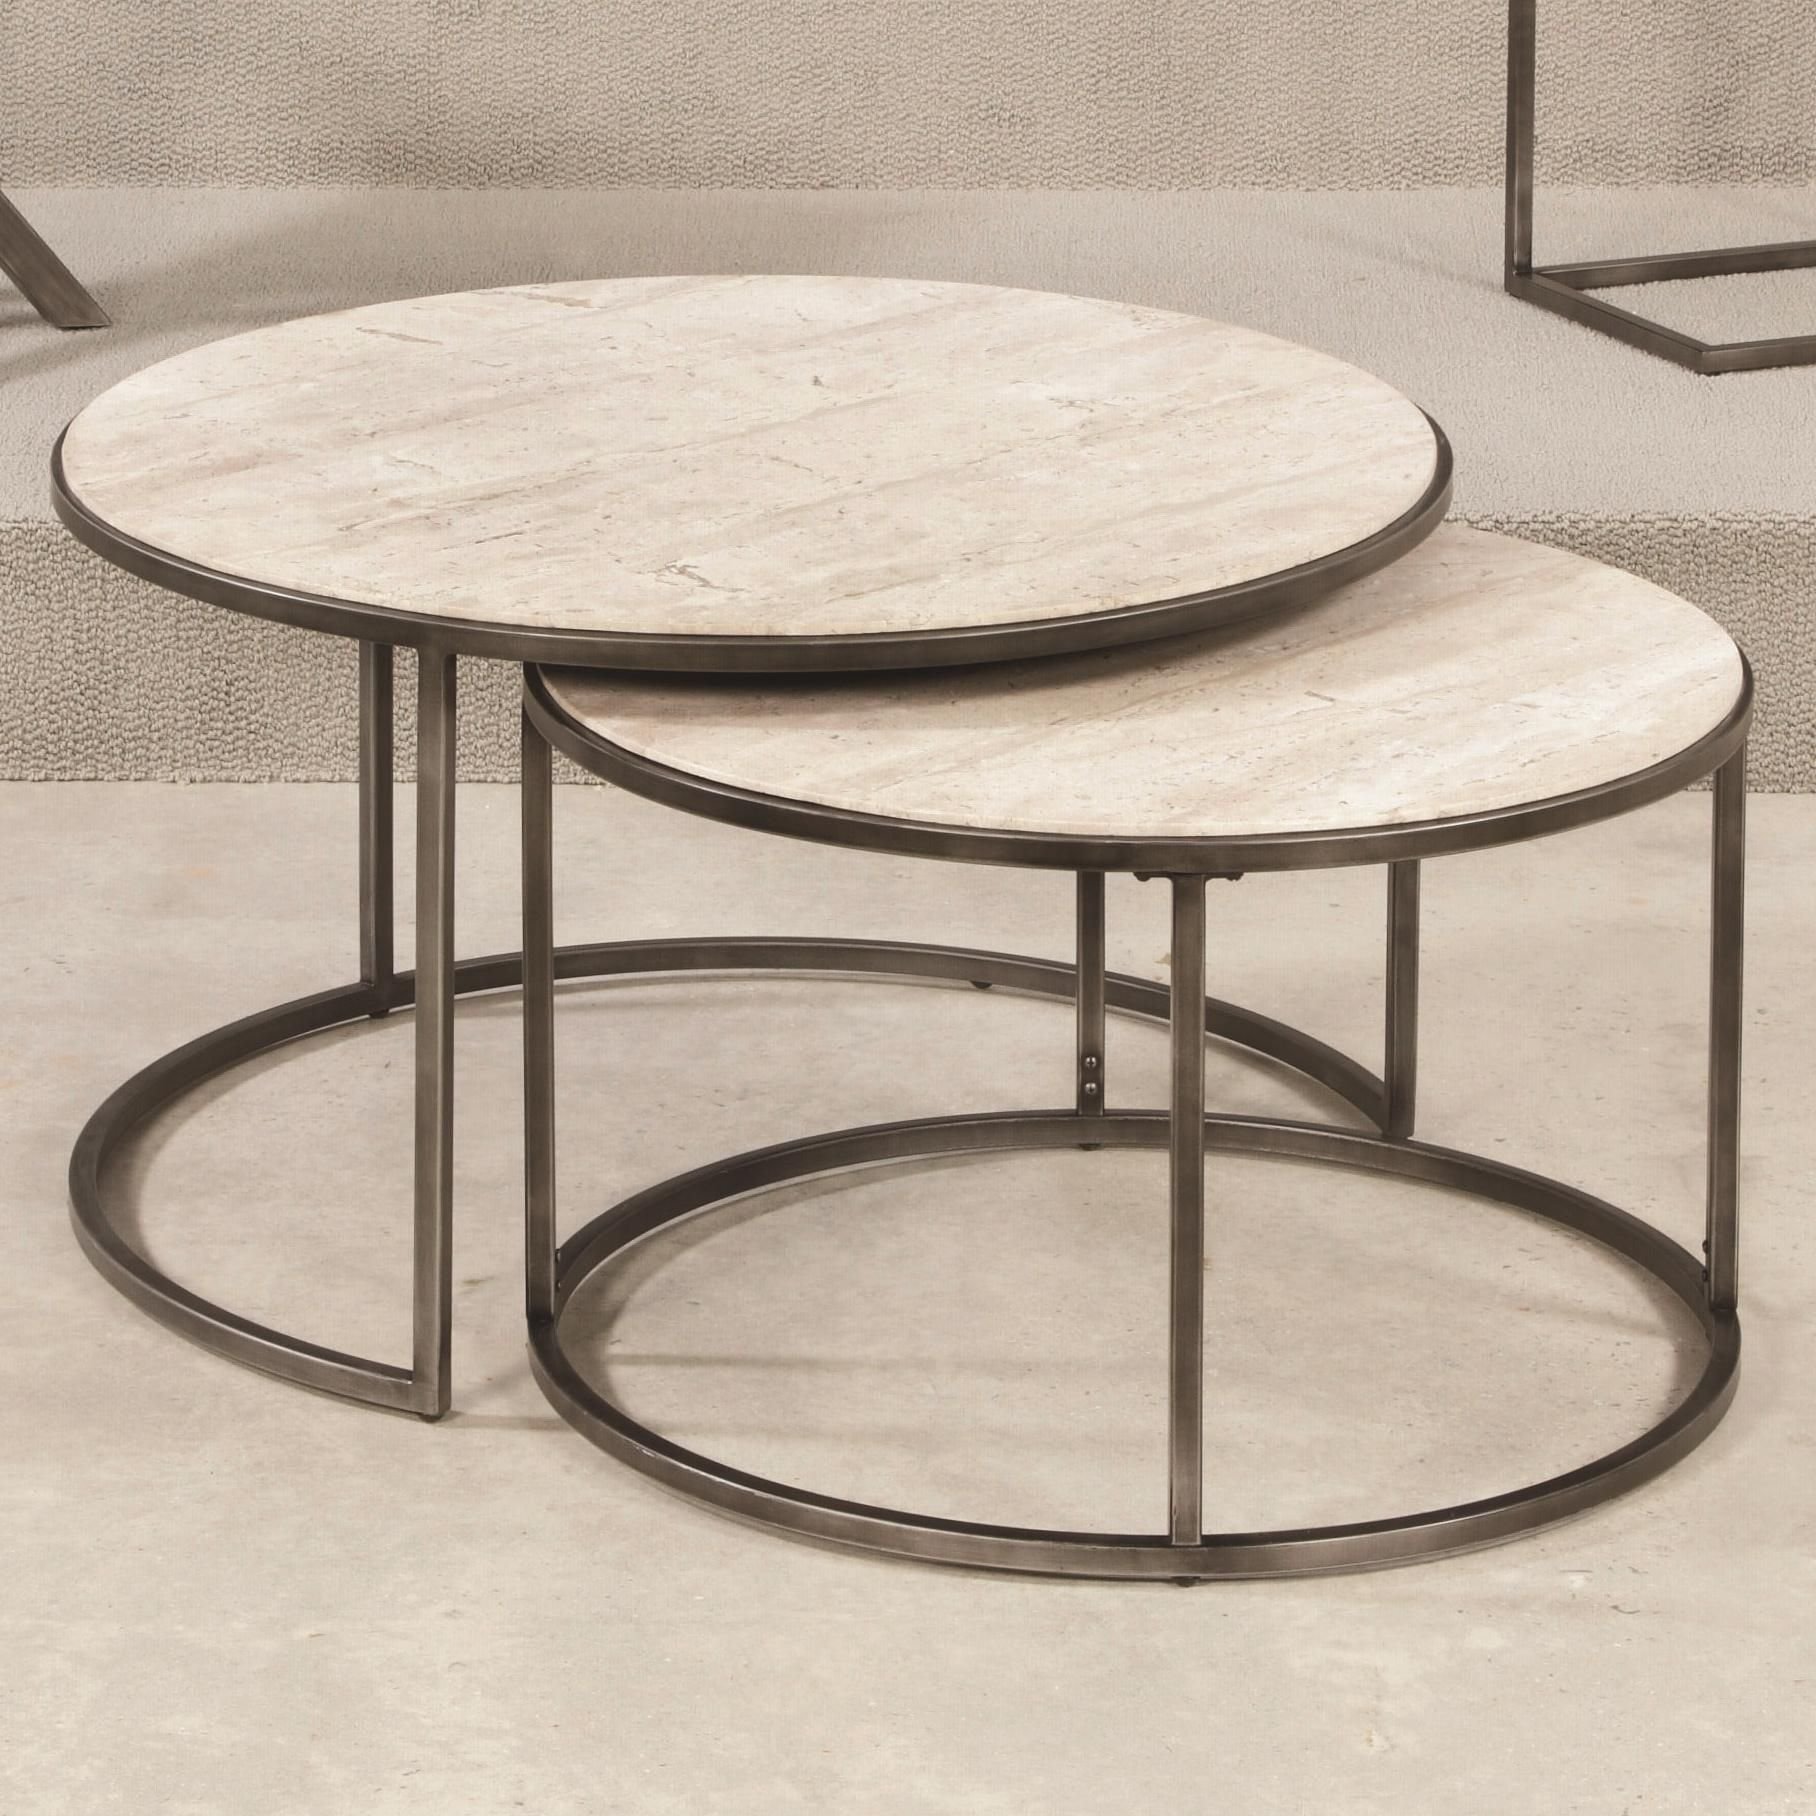 Modern basics round cocktail table with nesting tables by hammary hammary modern basics round cocktail table natural travertine textured bronze coffee tables at hayneedle geotapseo Images